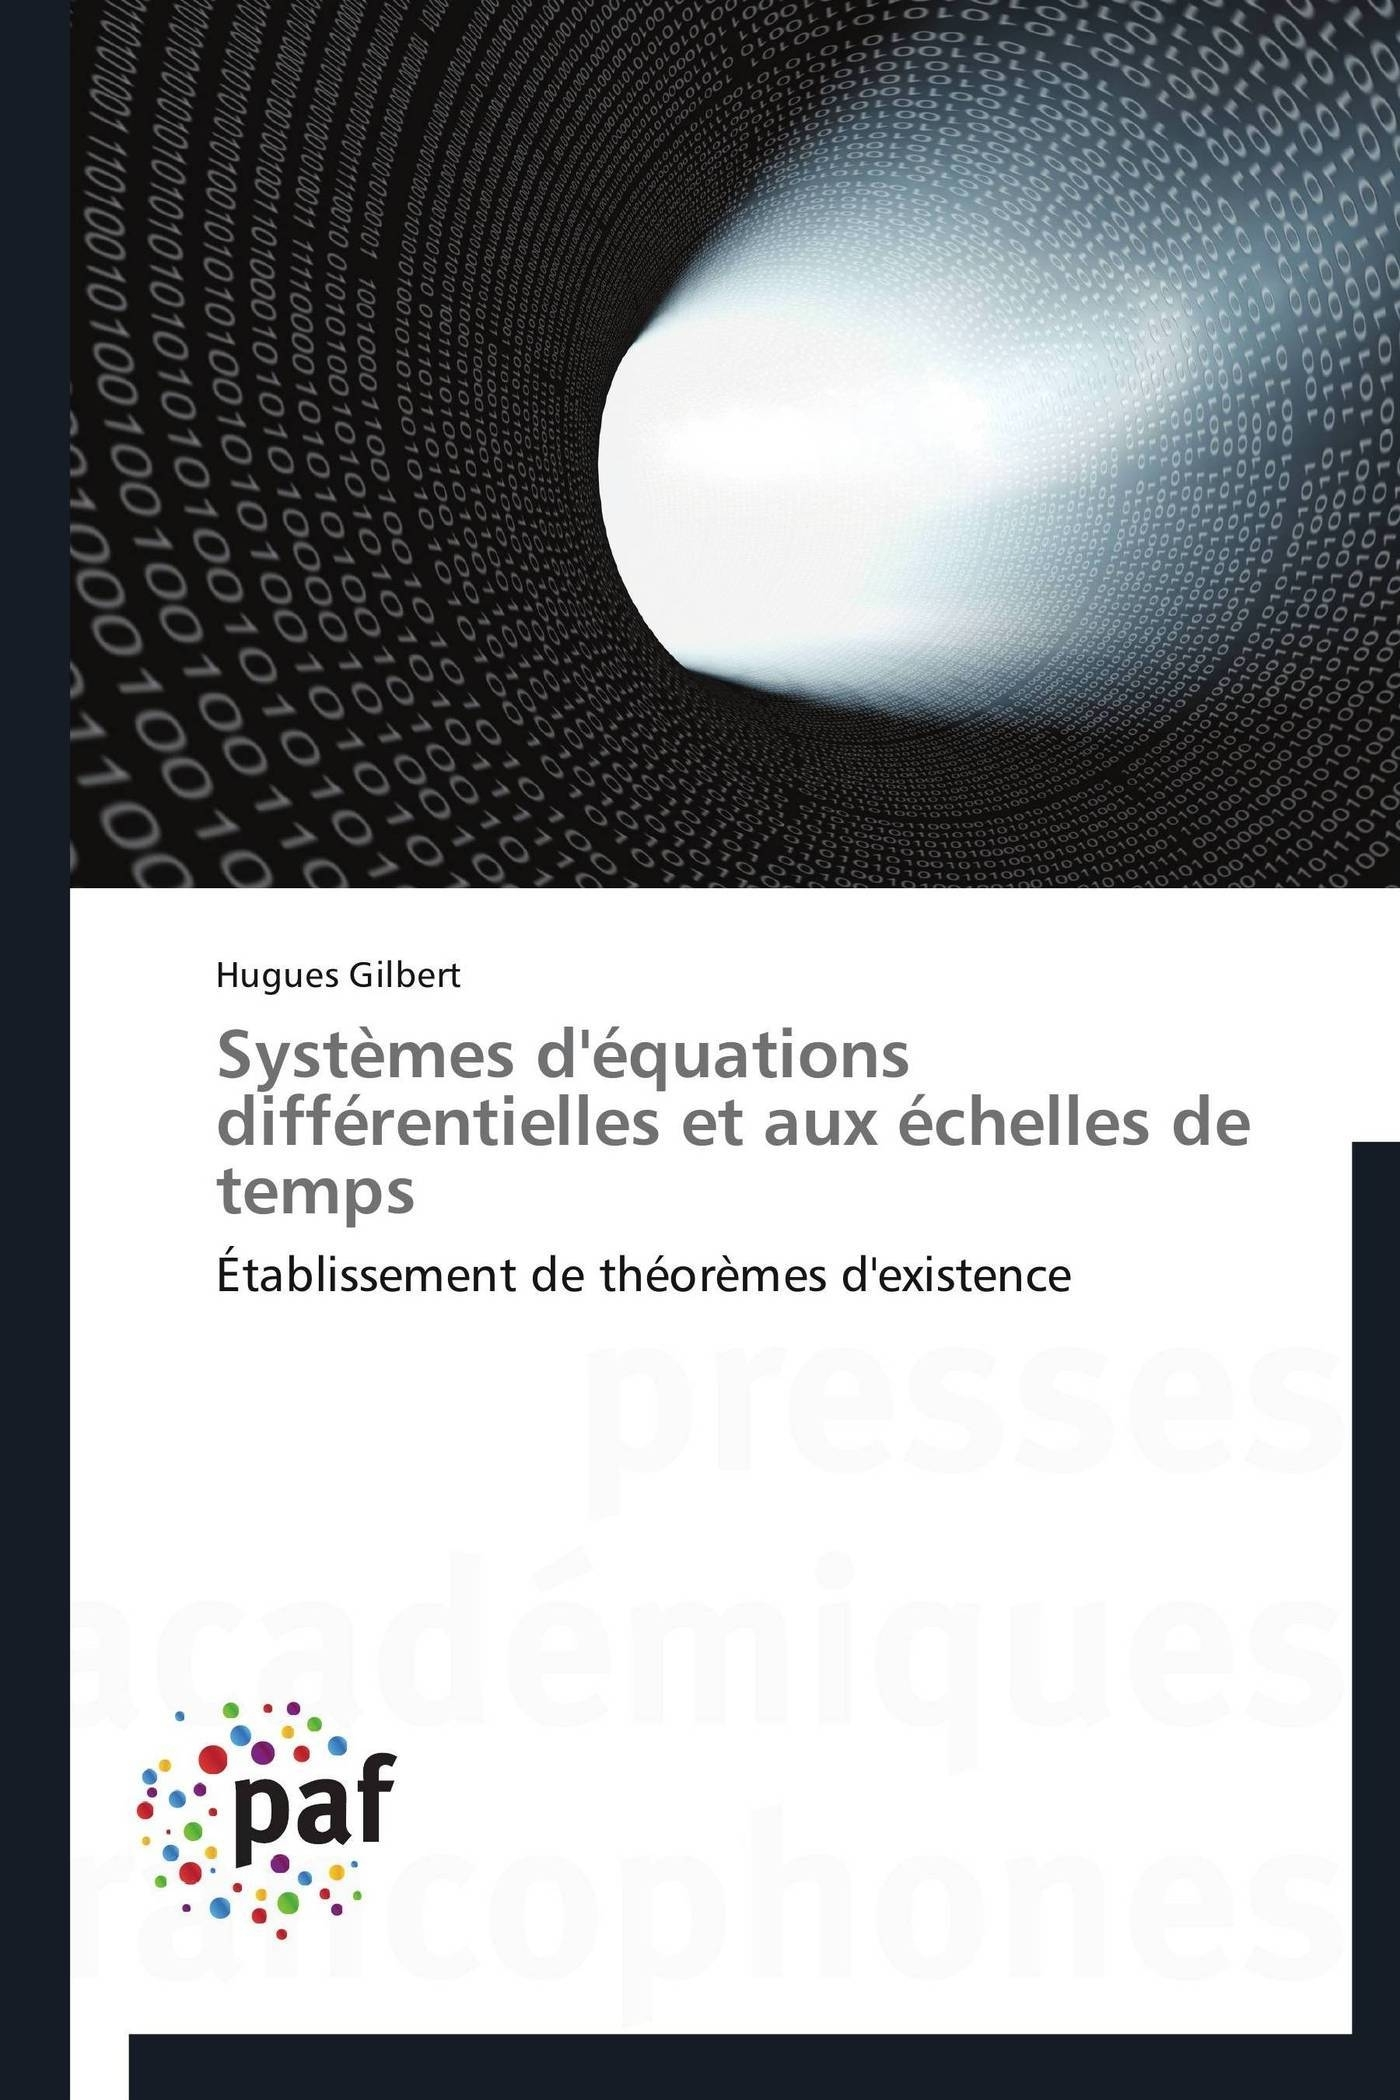 SYSTEMES D'EQUATIONS DIFFERENTIELLES ET AUX ECHELLES DE TEMPS